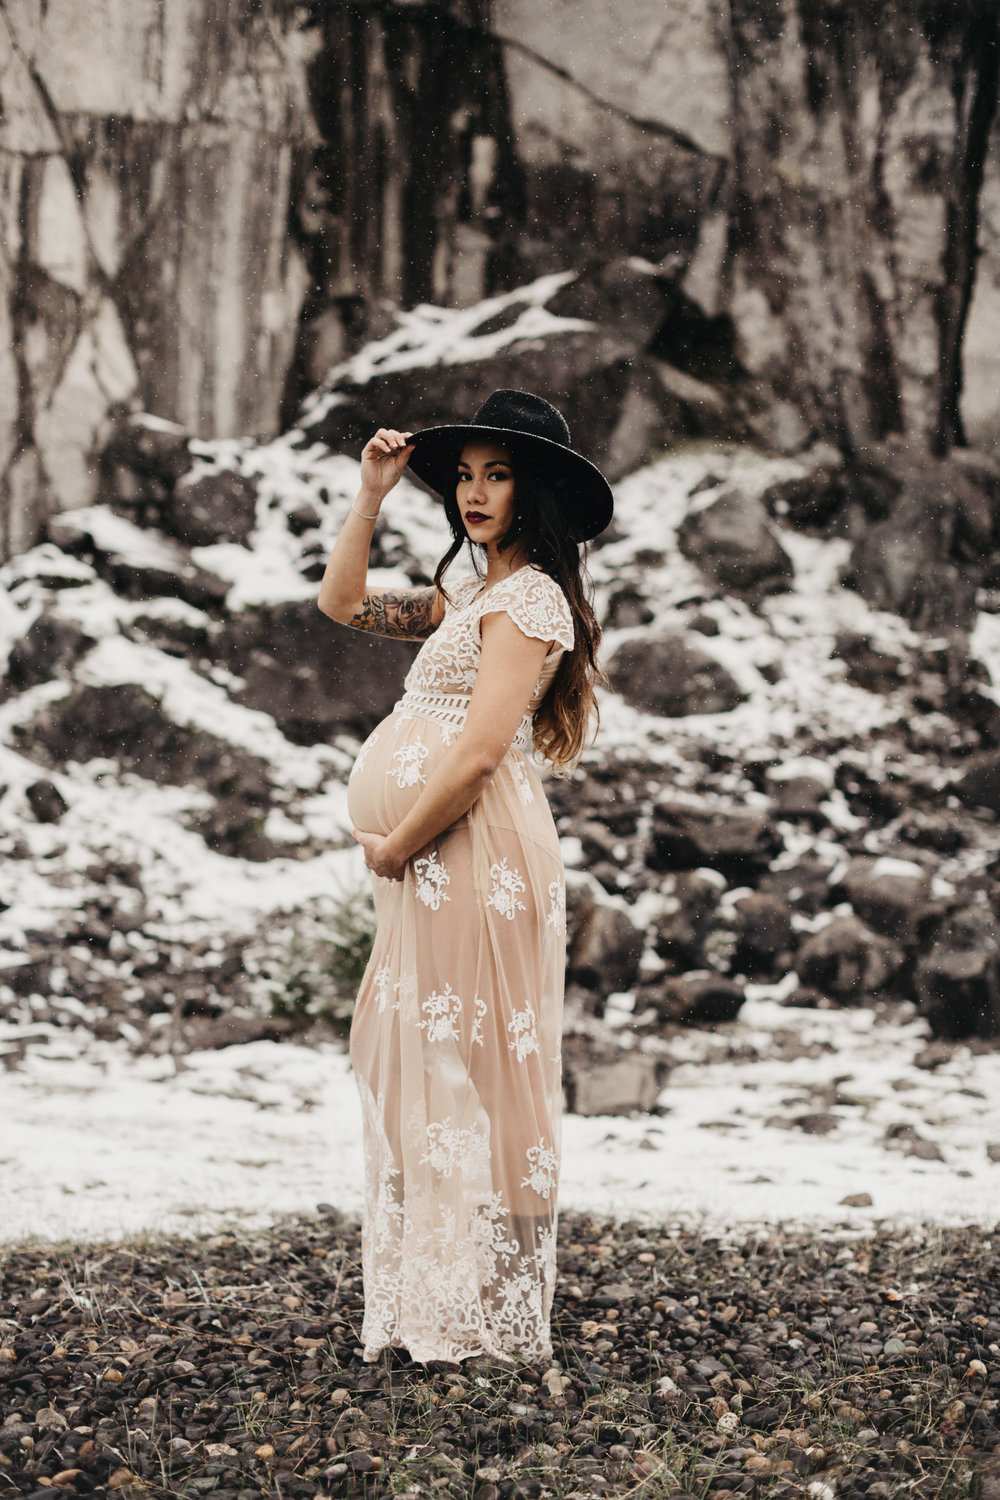 WINTER MATERNITY JENNY CHOKBENGBOUN PHOTO